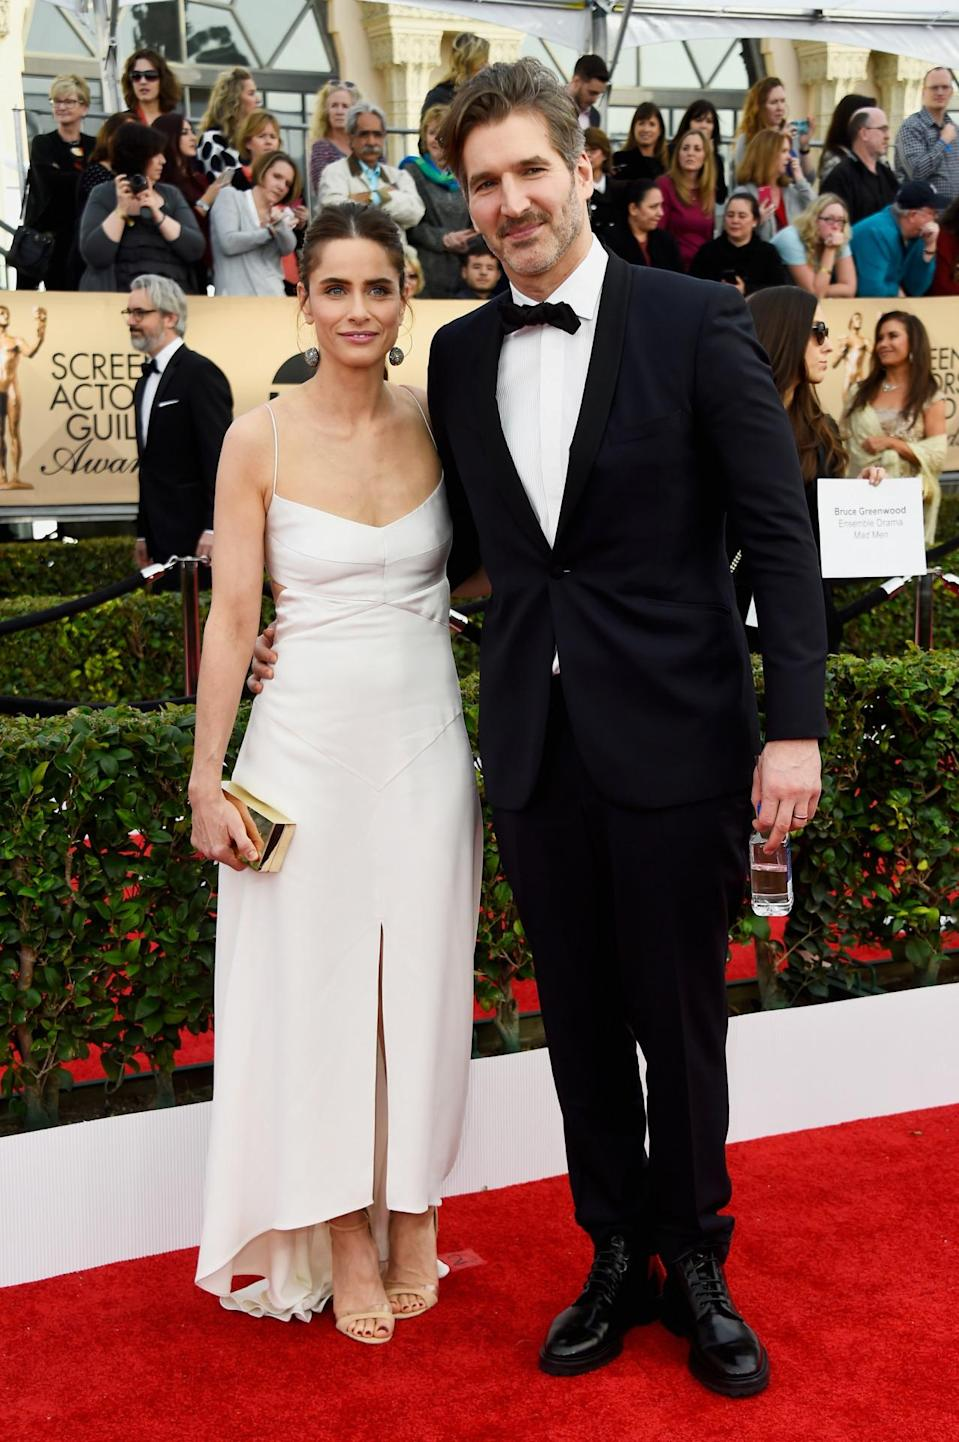 <p>Amanda Peet showed off her nude stillettos in a white midi mullet gown while posing with husband, David Benioff of <i>Game of Thrones</i> fame, on the red carpet. <i>Photo: Getty Images</i></p>